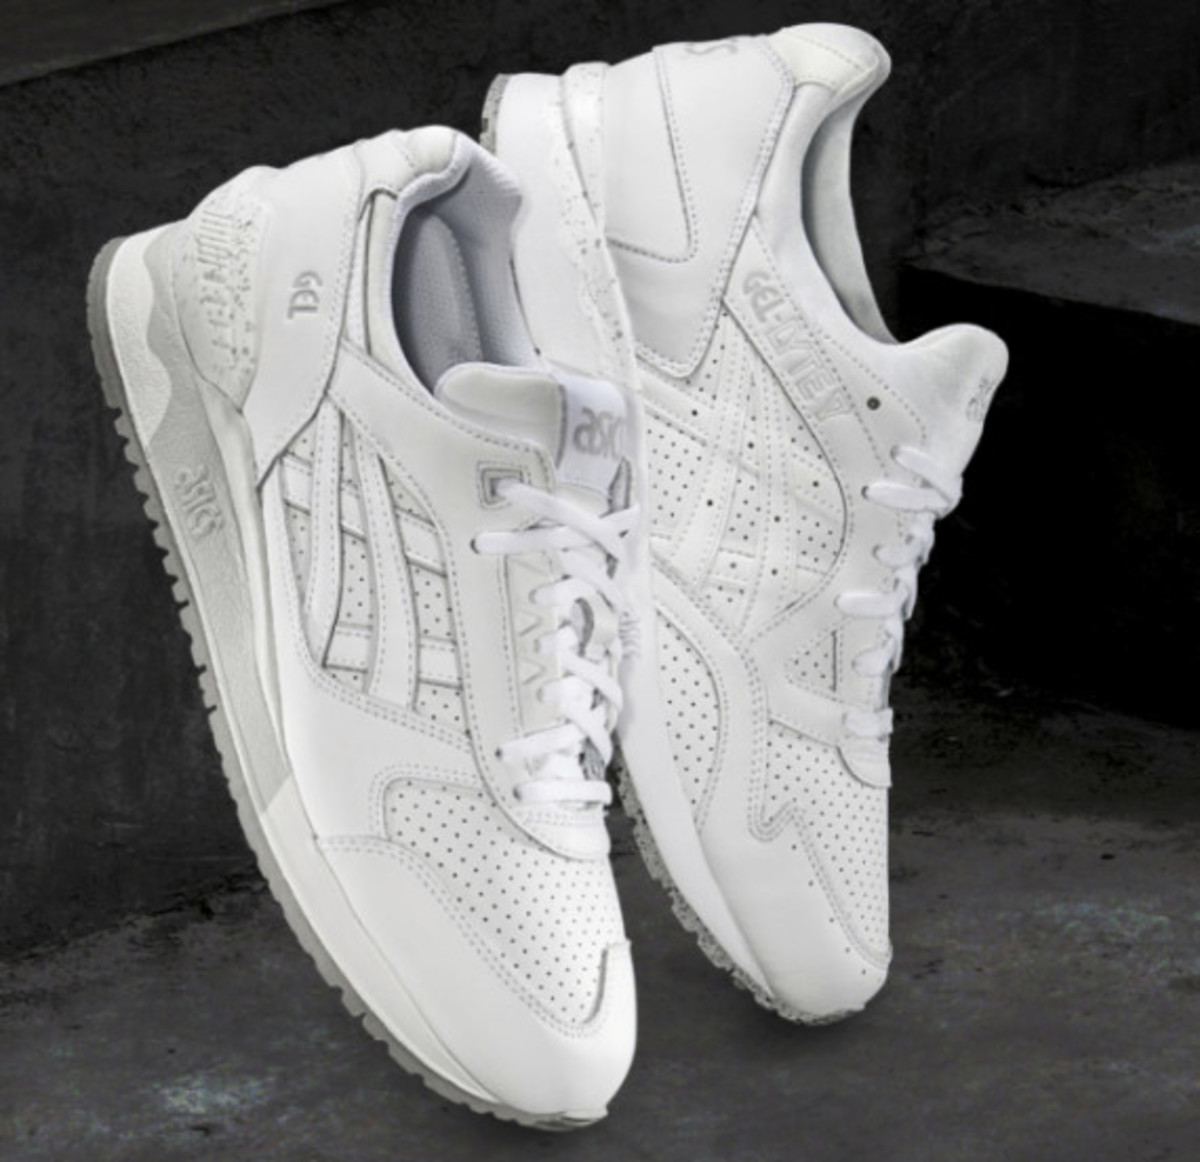 asics-fall-2015-footwear-collection-preview-01